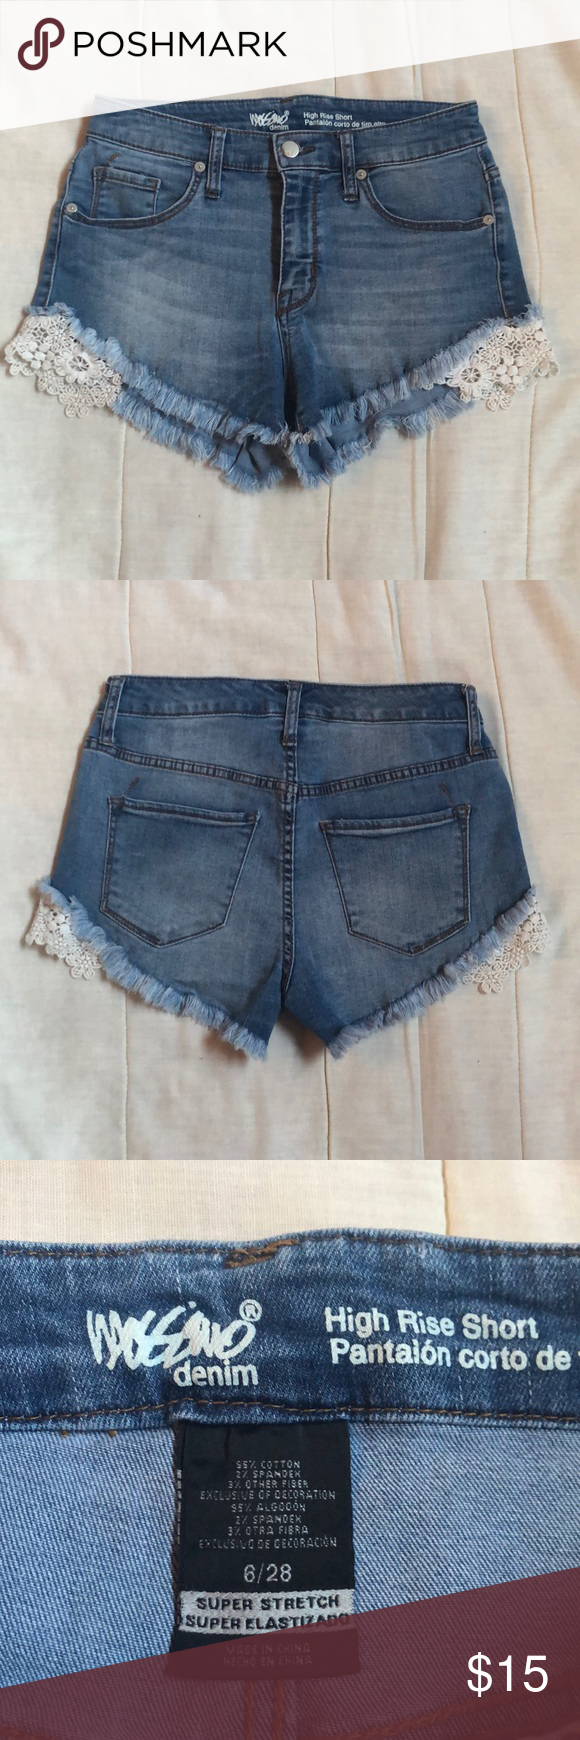 Mossimo Lace Shorts •Perfect for summer  •The button is scratched up but in good condition otherwise (see photo)  •High rise shorts  •Lace details on the sides  •Measurements   - Waist: 14 inches   - Length: 10 inches  •Please ask questions